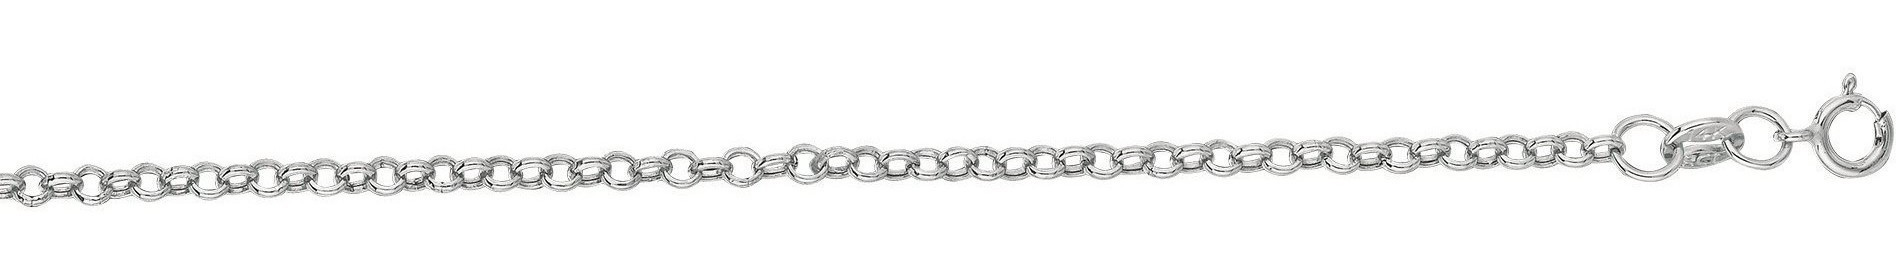 "20"" 14K White Gold 2.0mm (0.08"") Polished Diamond Cut Round Rolo Chain w/ Spring Ring Clasp"